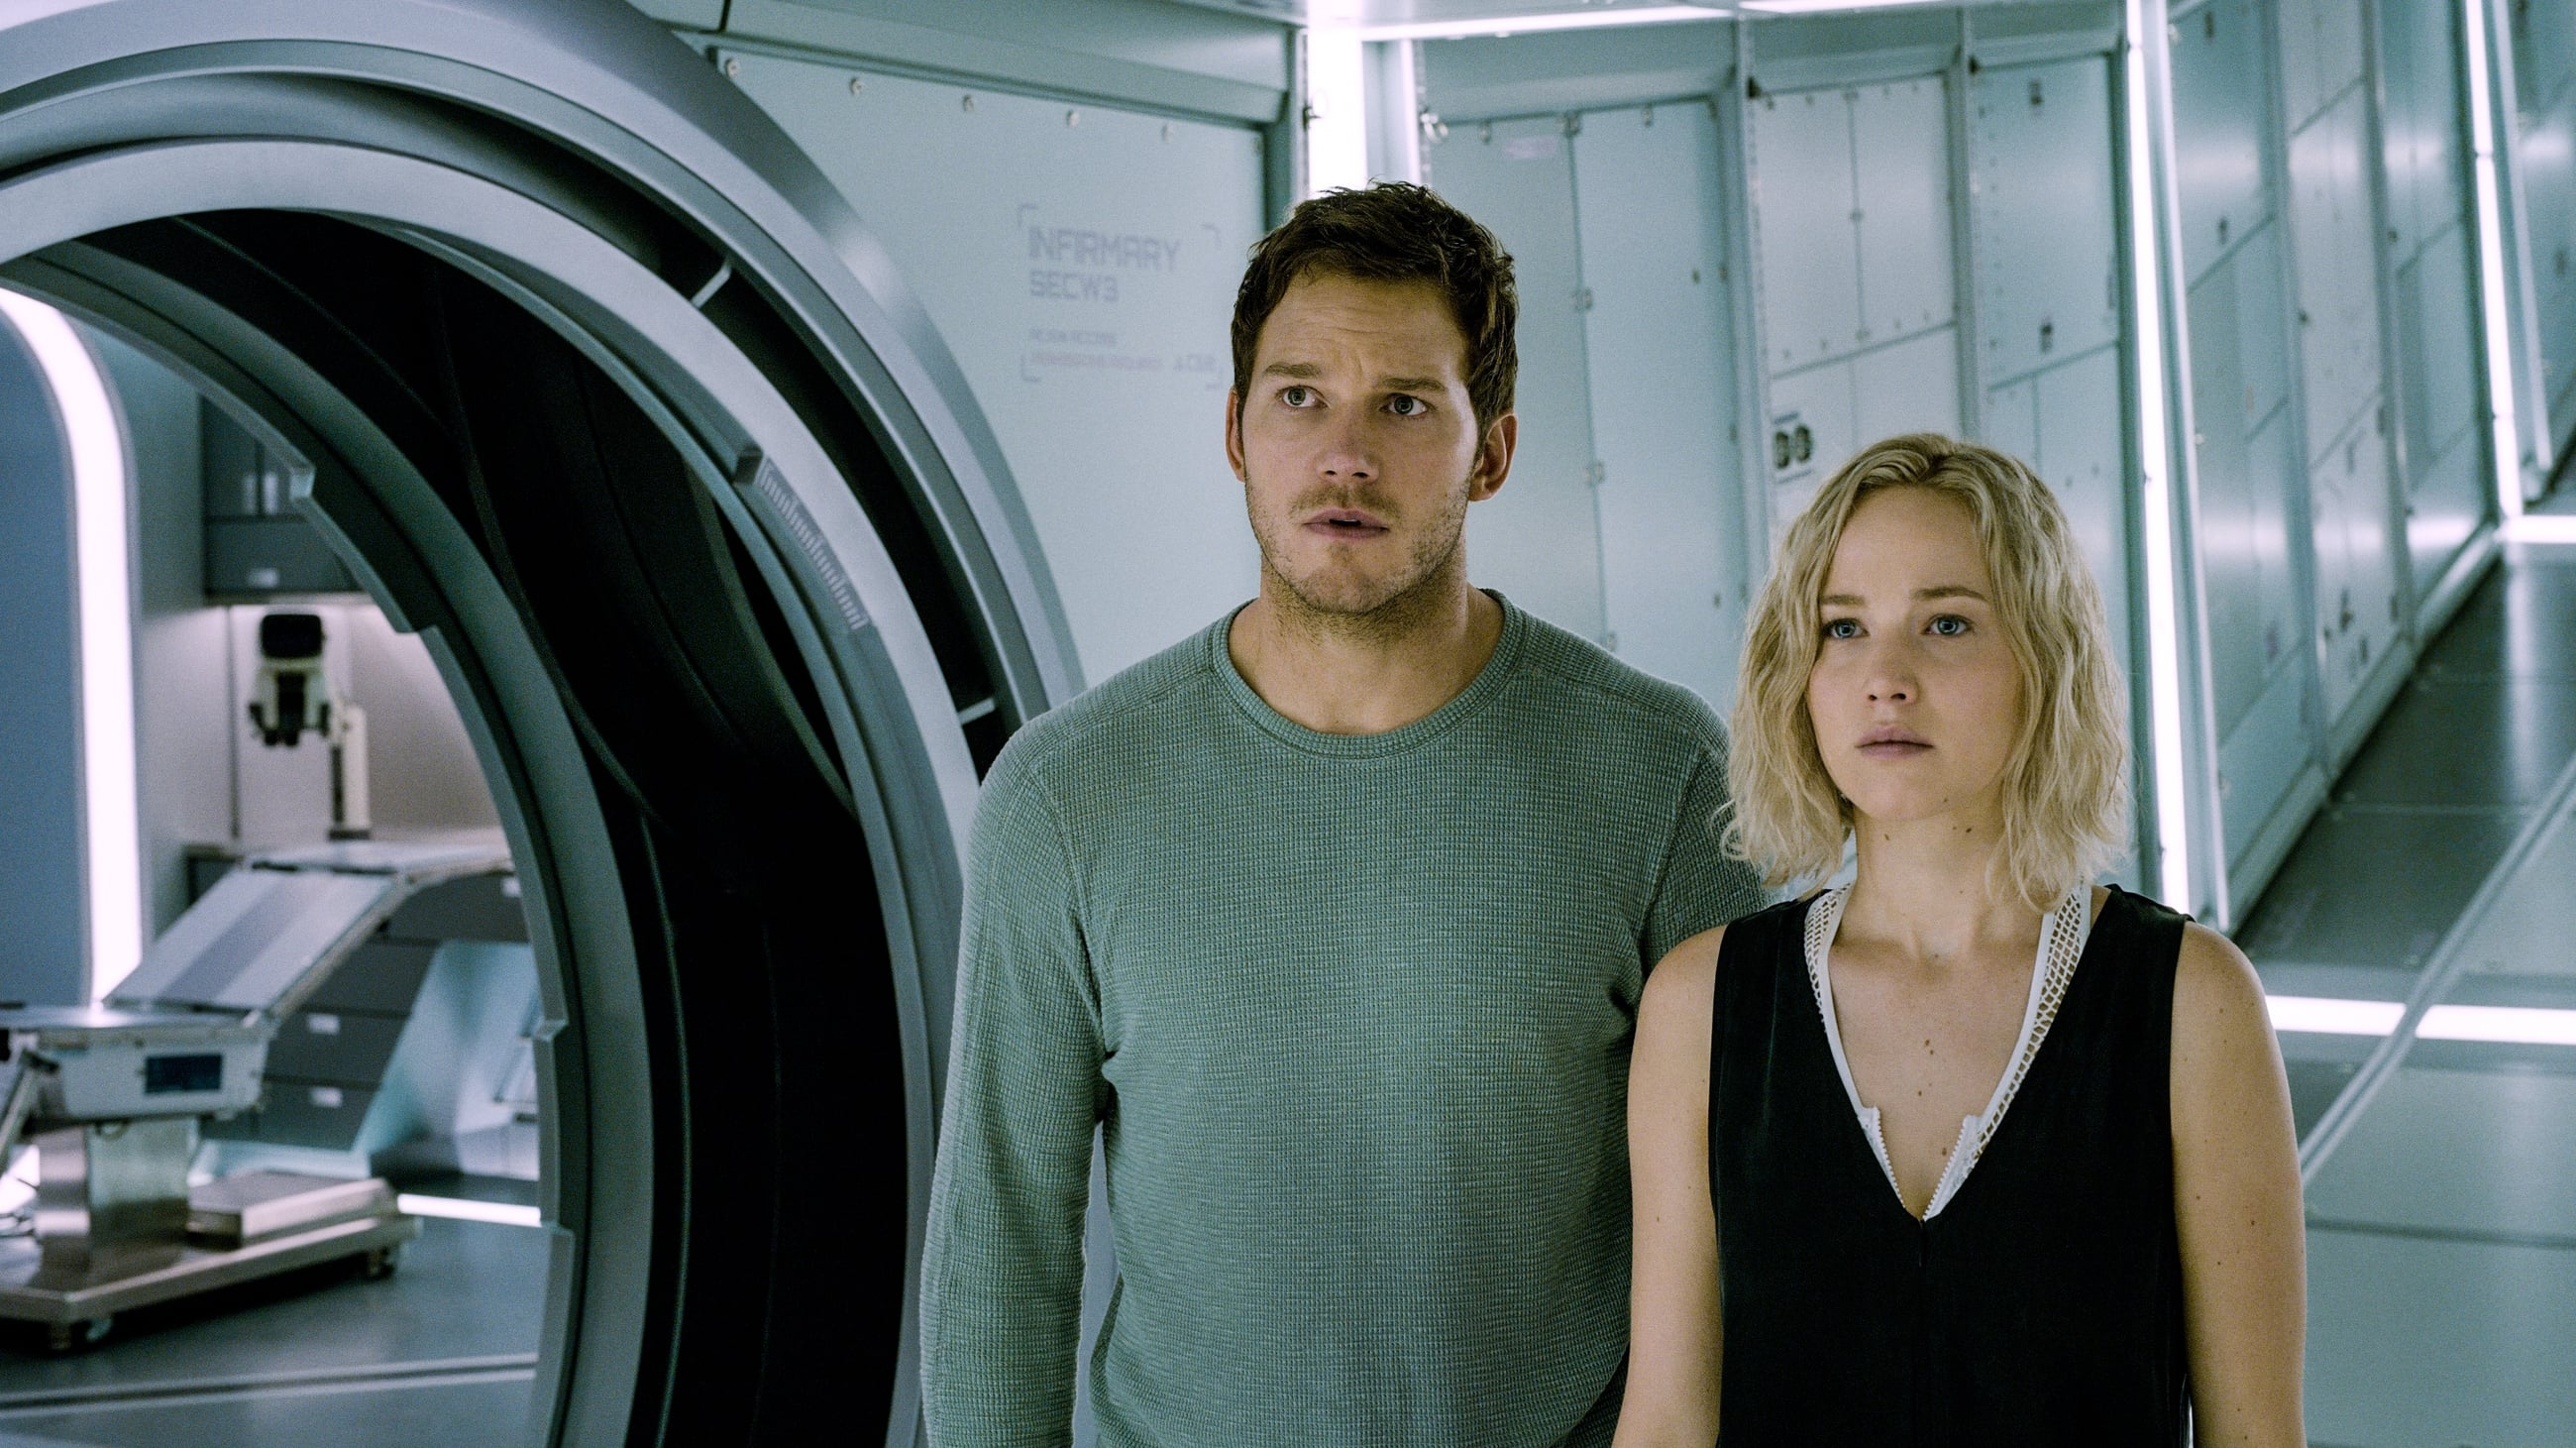 Full Free Watch Passengers 2016 Movie Without Downloading